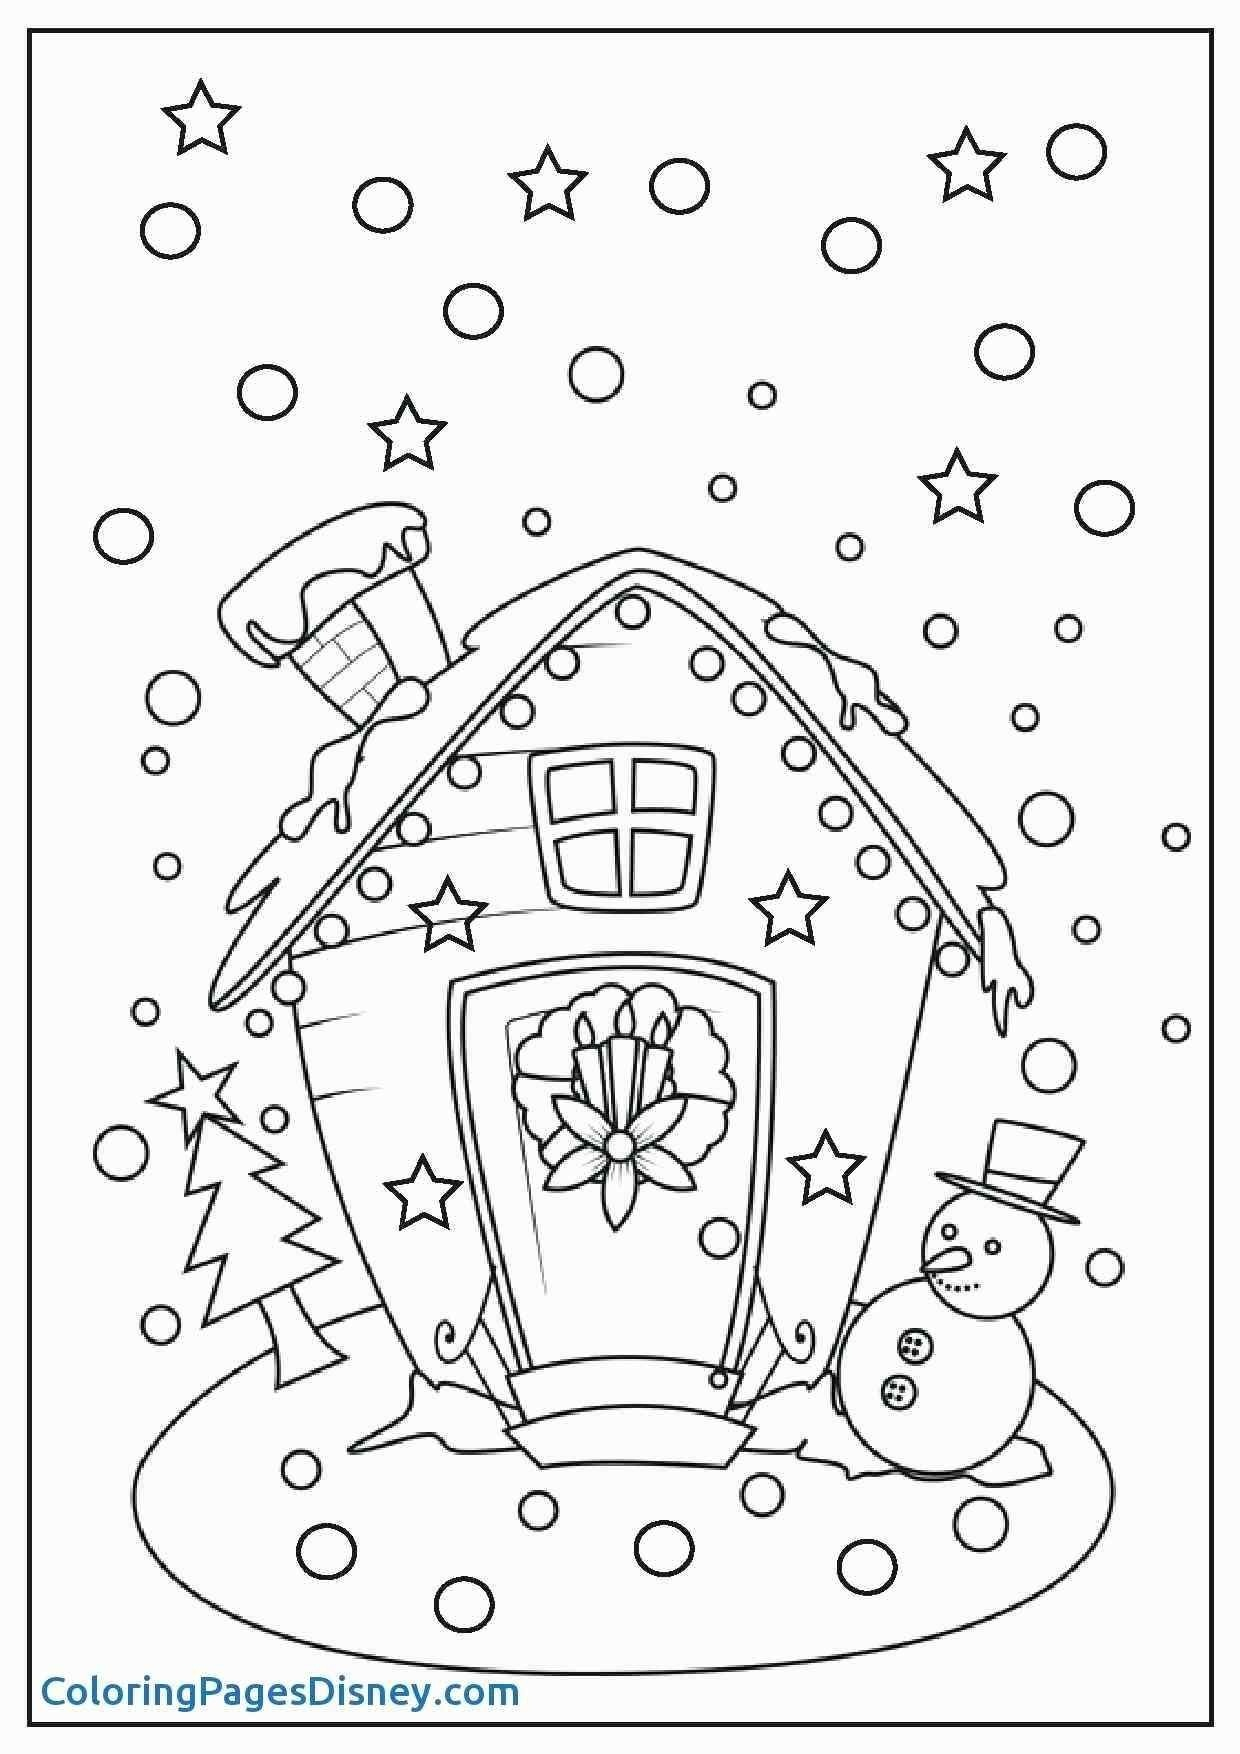 Free Patterns For Stained Glass Unique Printable Castle Template - Free Printable Castle Templates